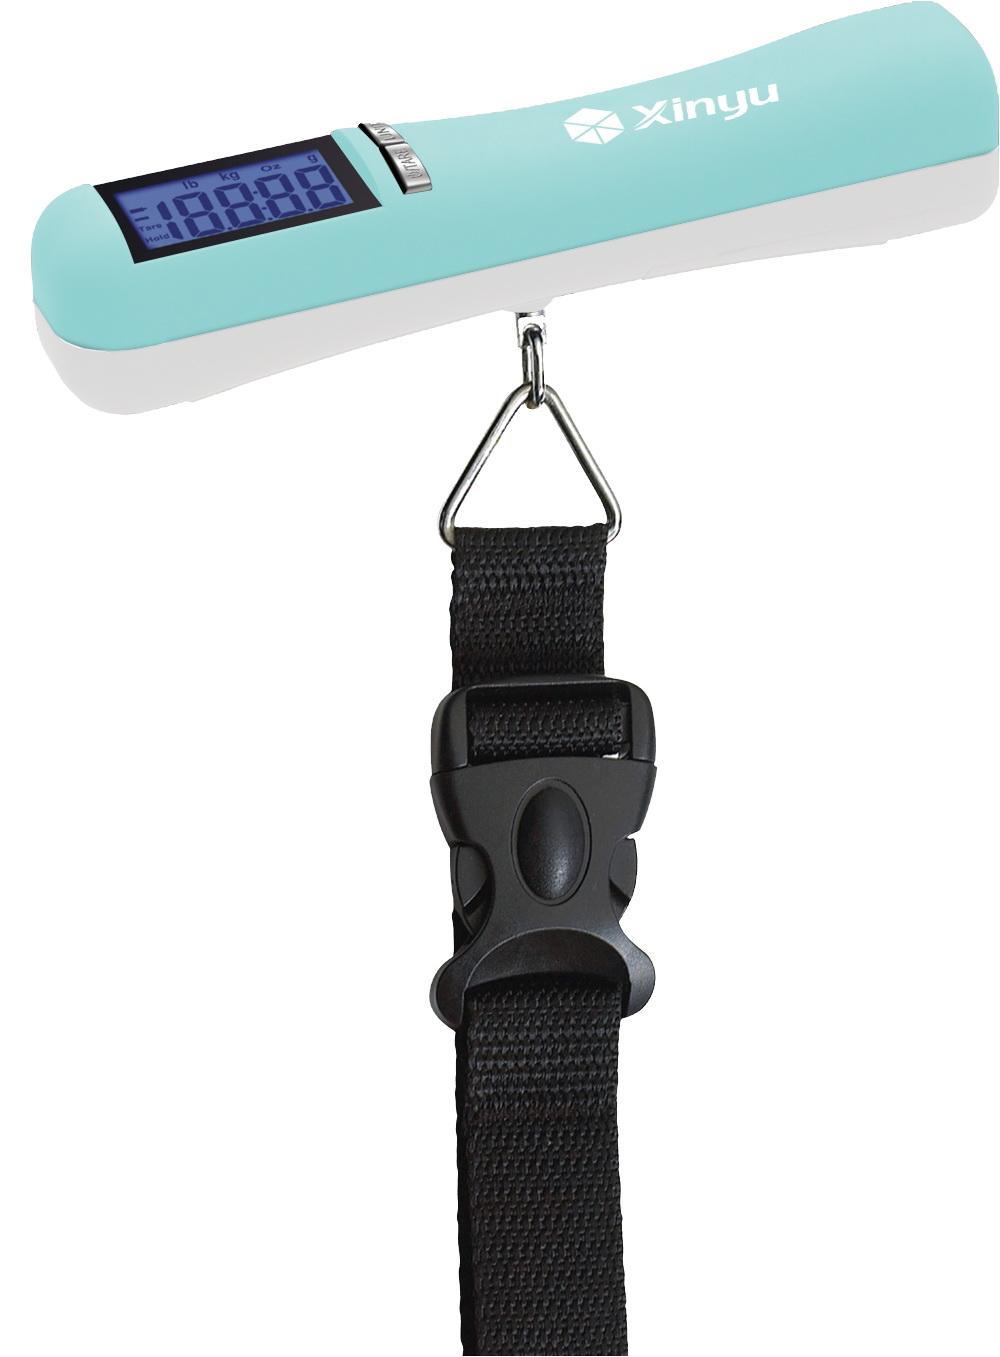 Portable Hanging Digital Electronic Scale